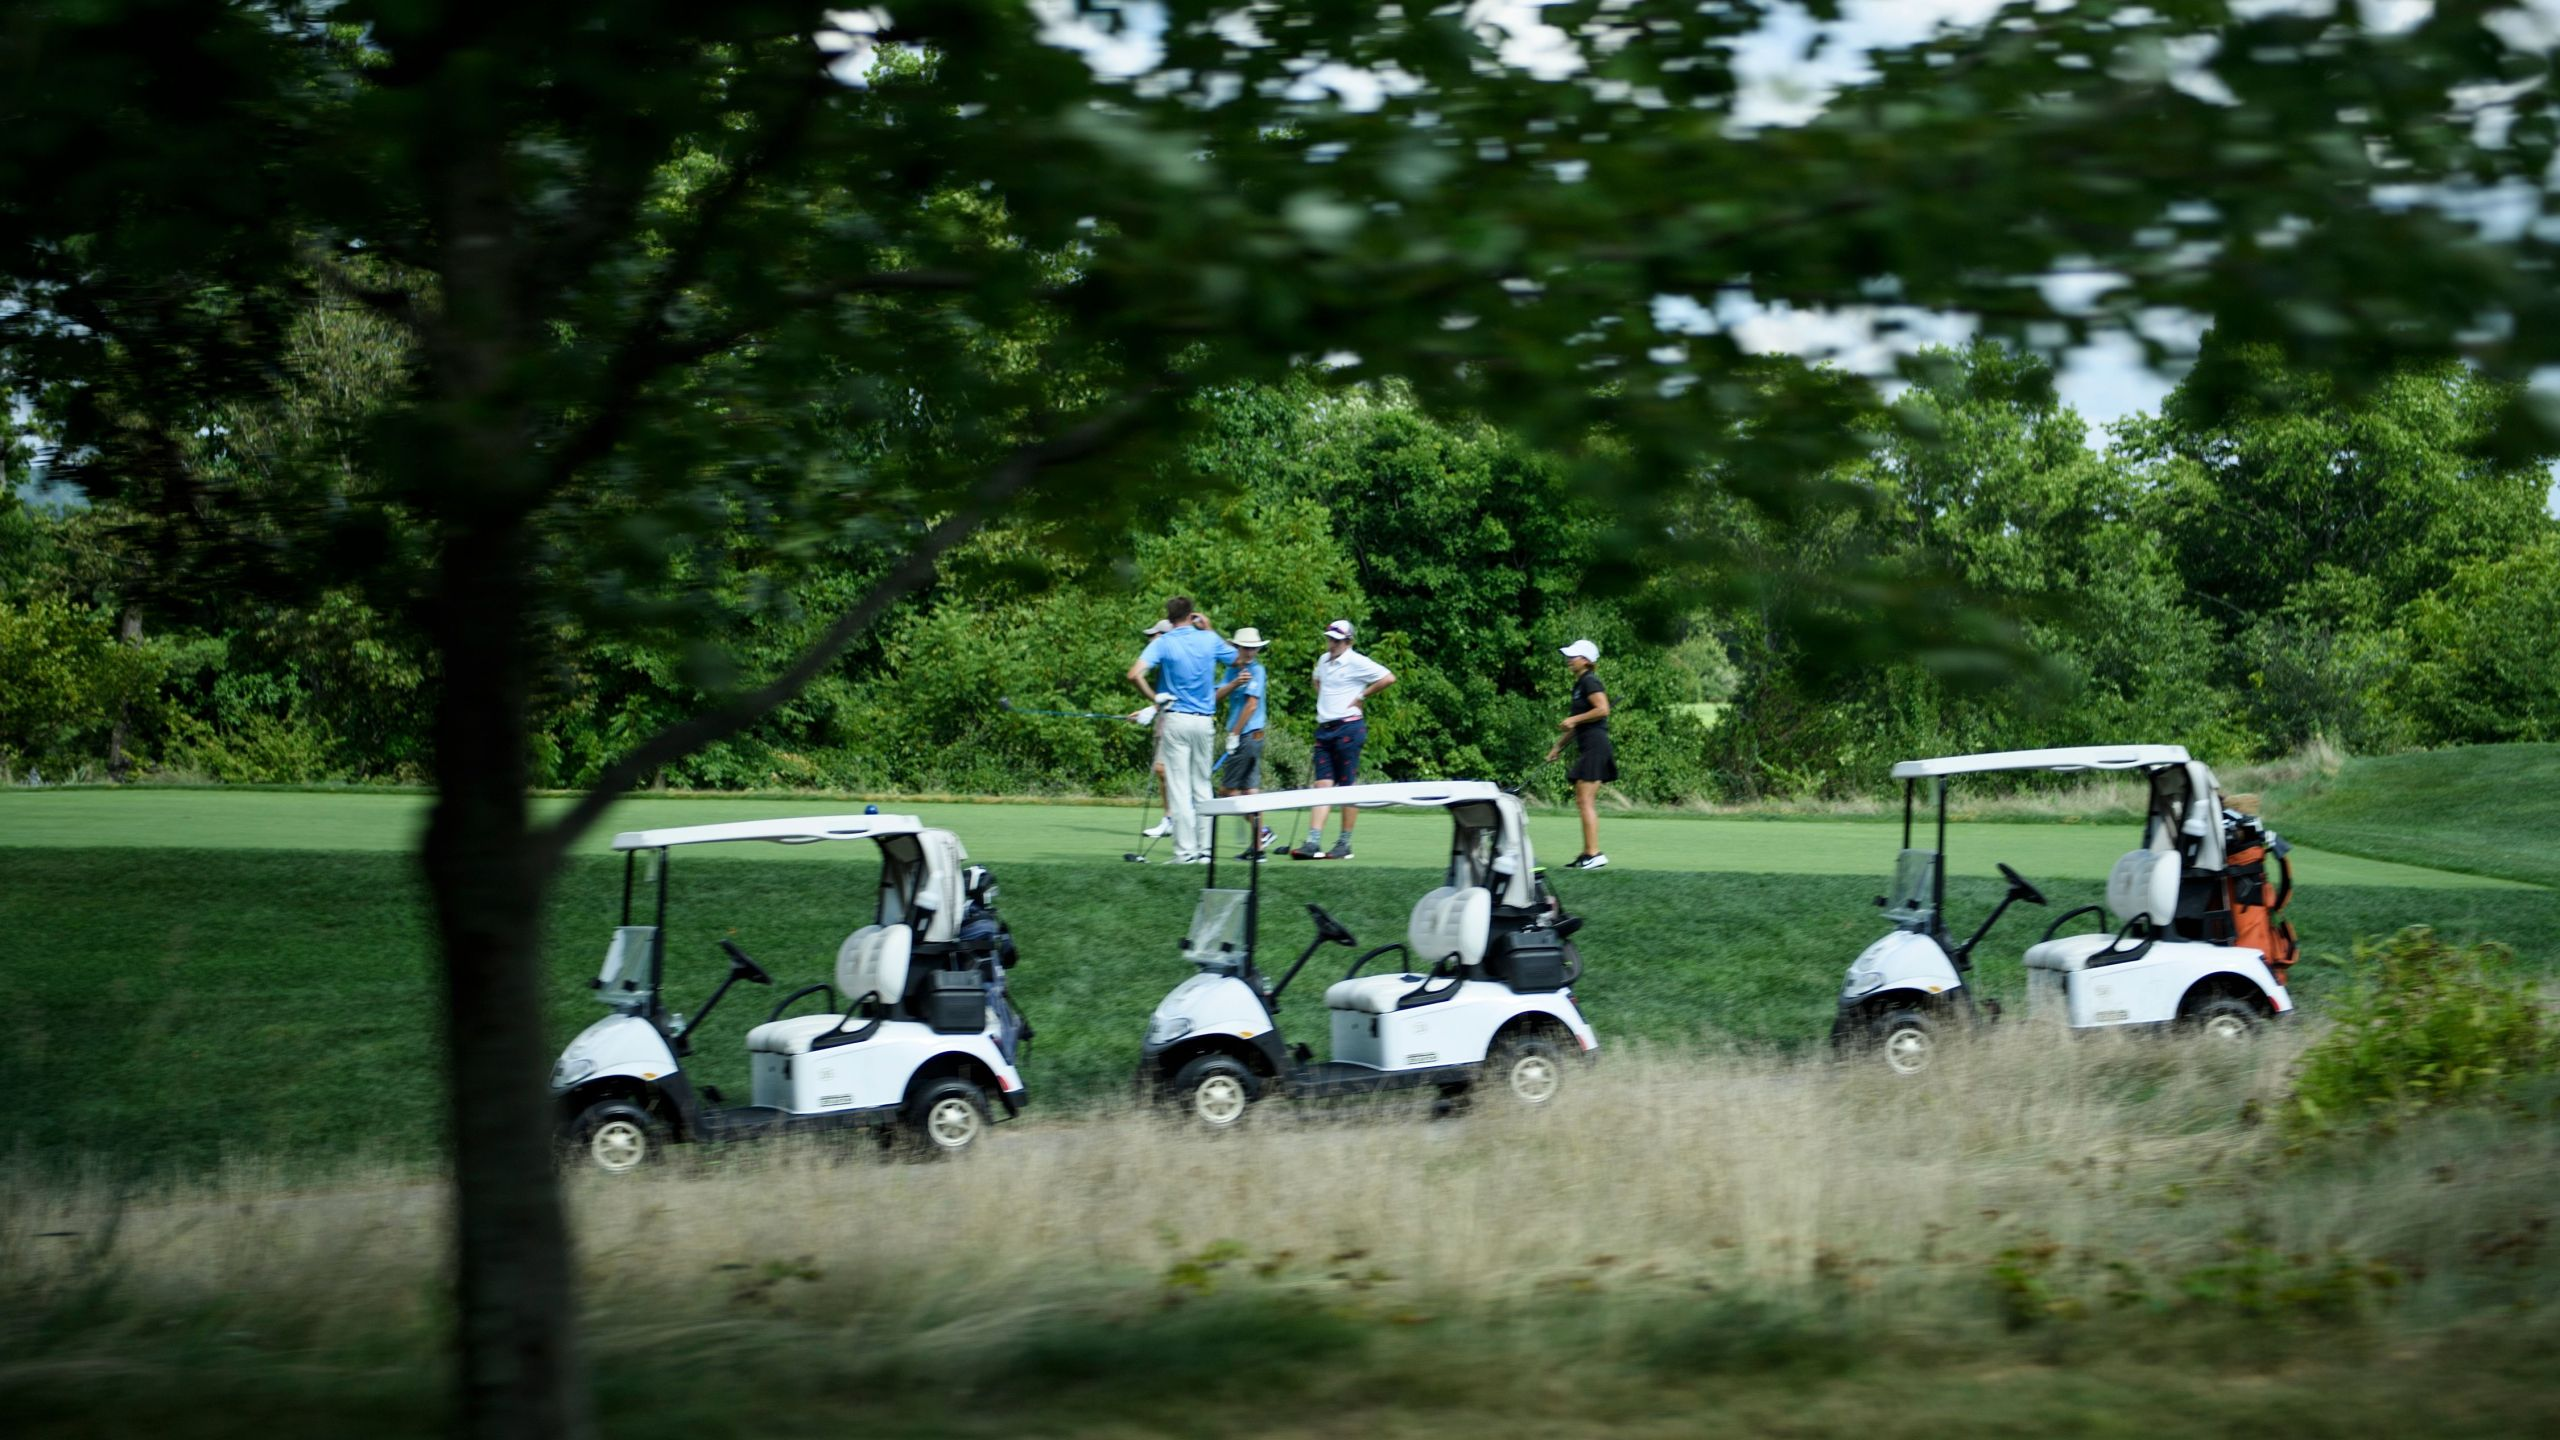 People play golf at the Trump National Golf Club in Bedminster, New Jersey on Aug. 9, 2018. (Credit: Brendan Smialowski/AFP/Getty Images)